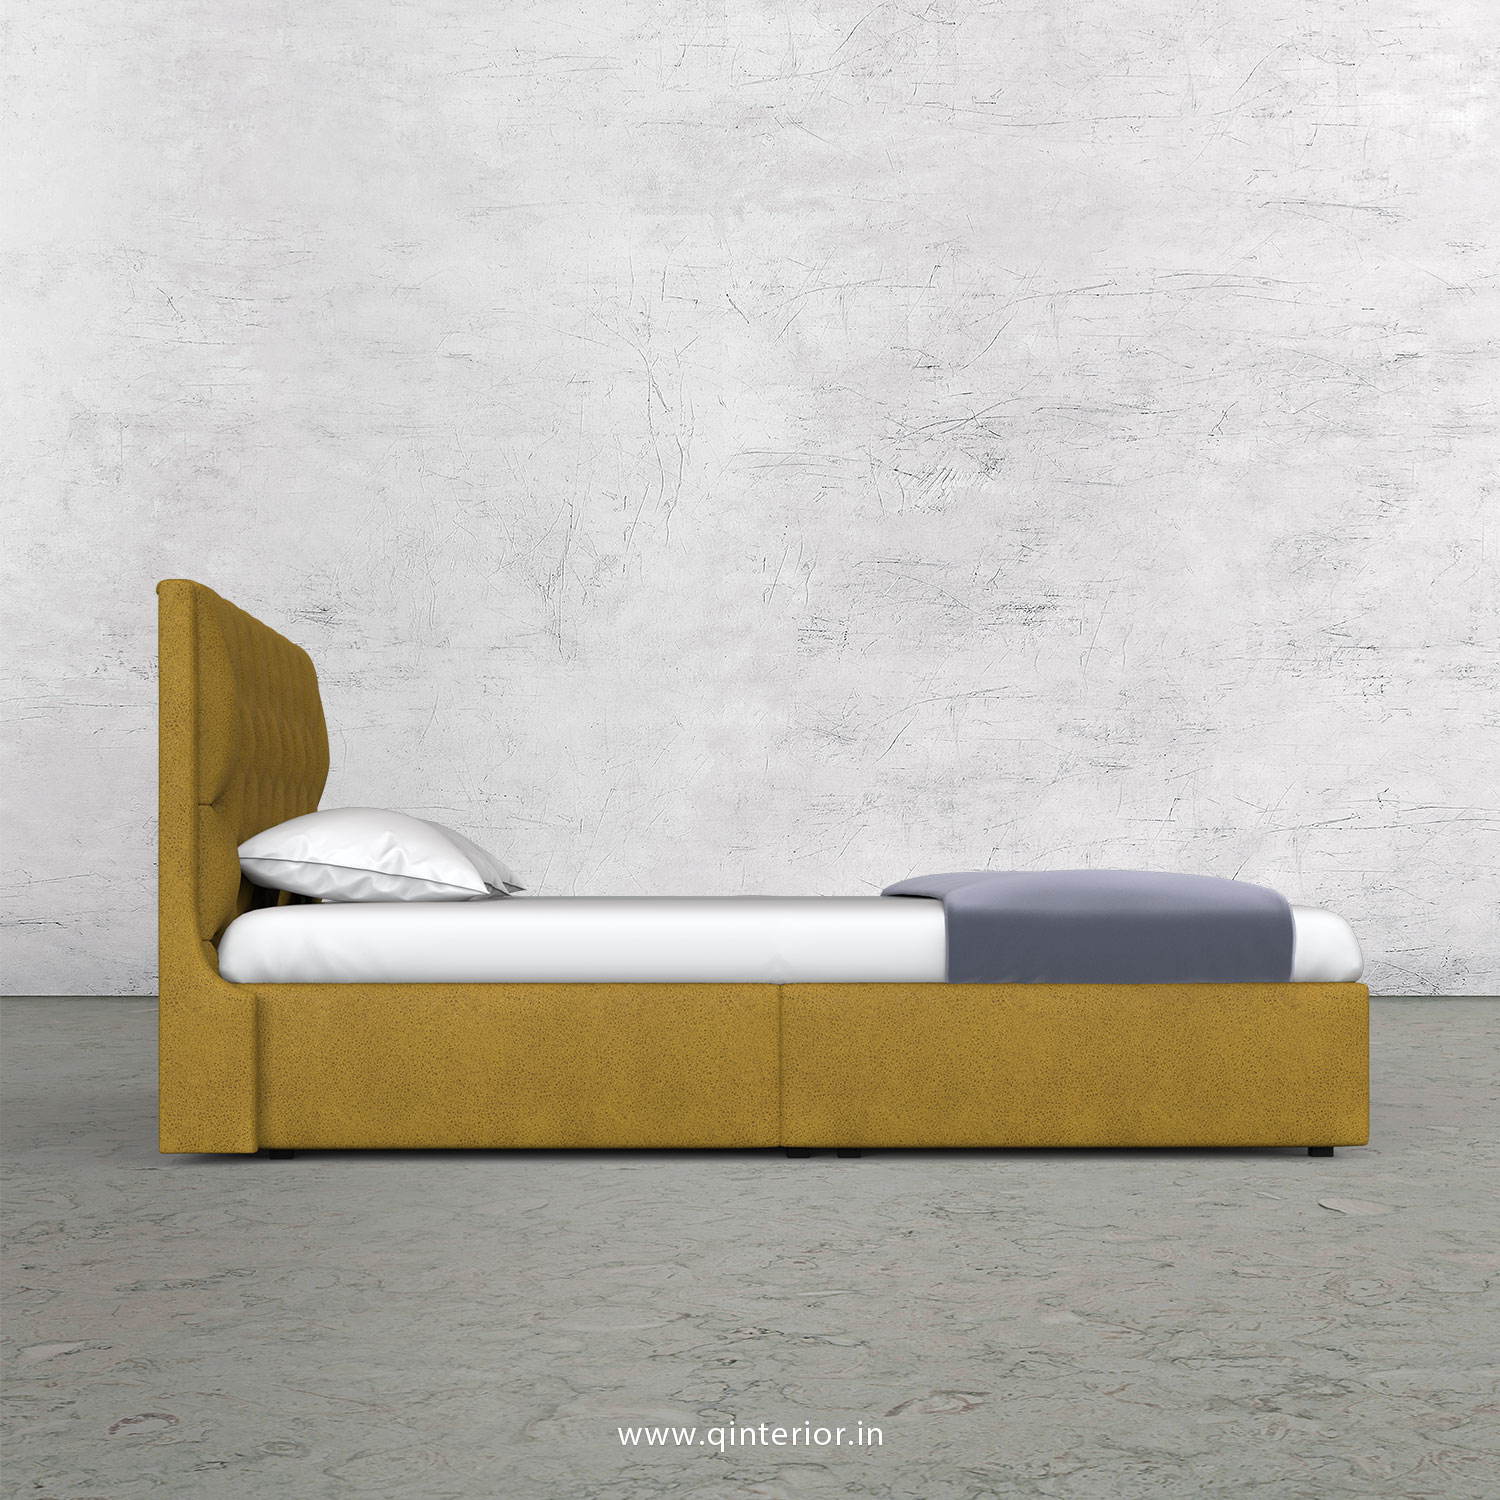 Scorpius King Size Bed in Fab Leather Fabric - KBD009 FL18